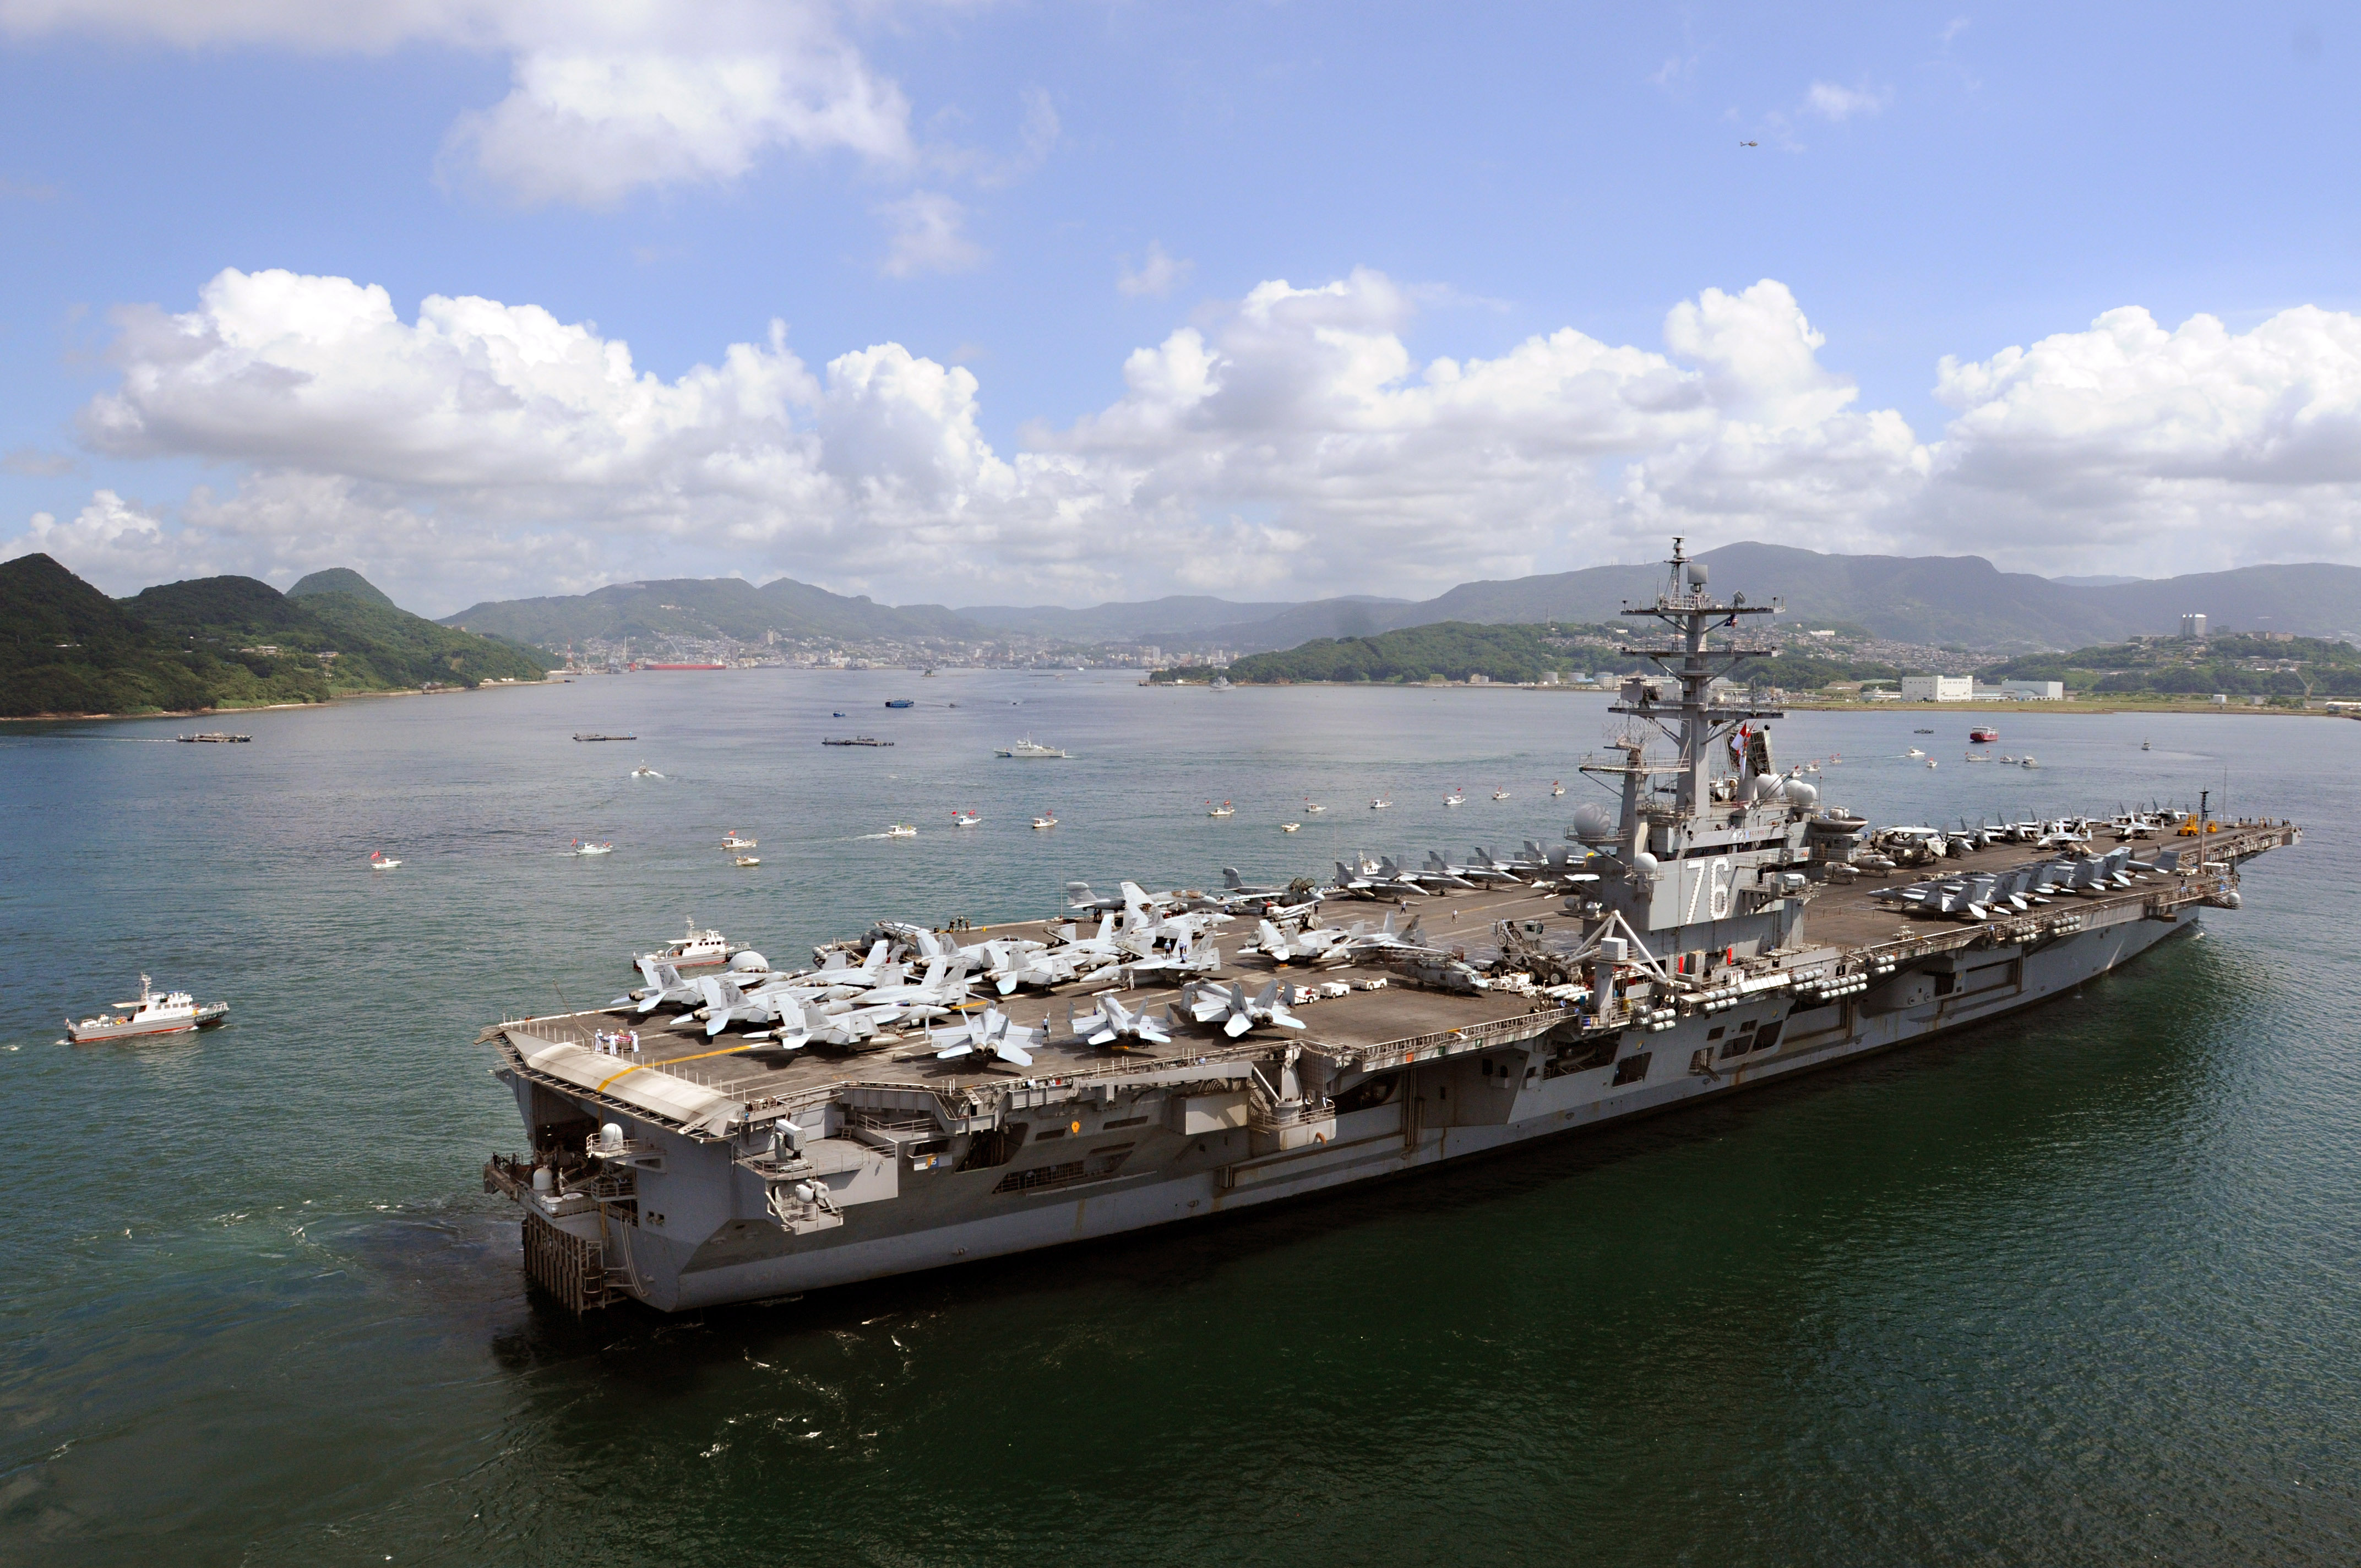 USS Ronald Reagan and Other Small Boats in a Stock Photo.